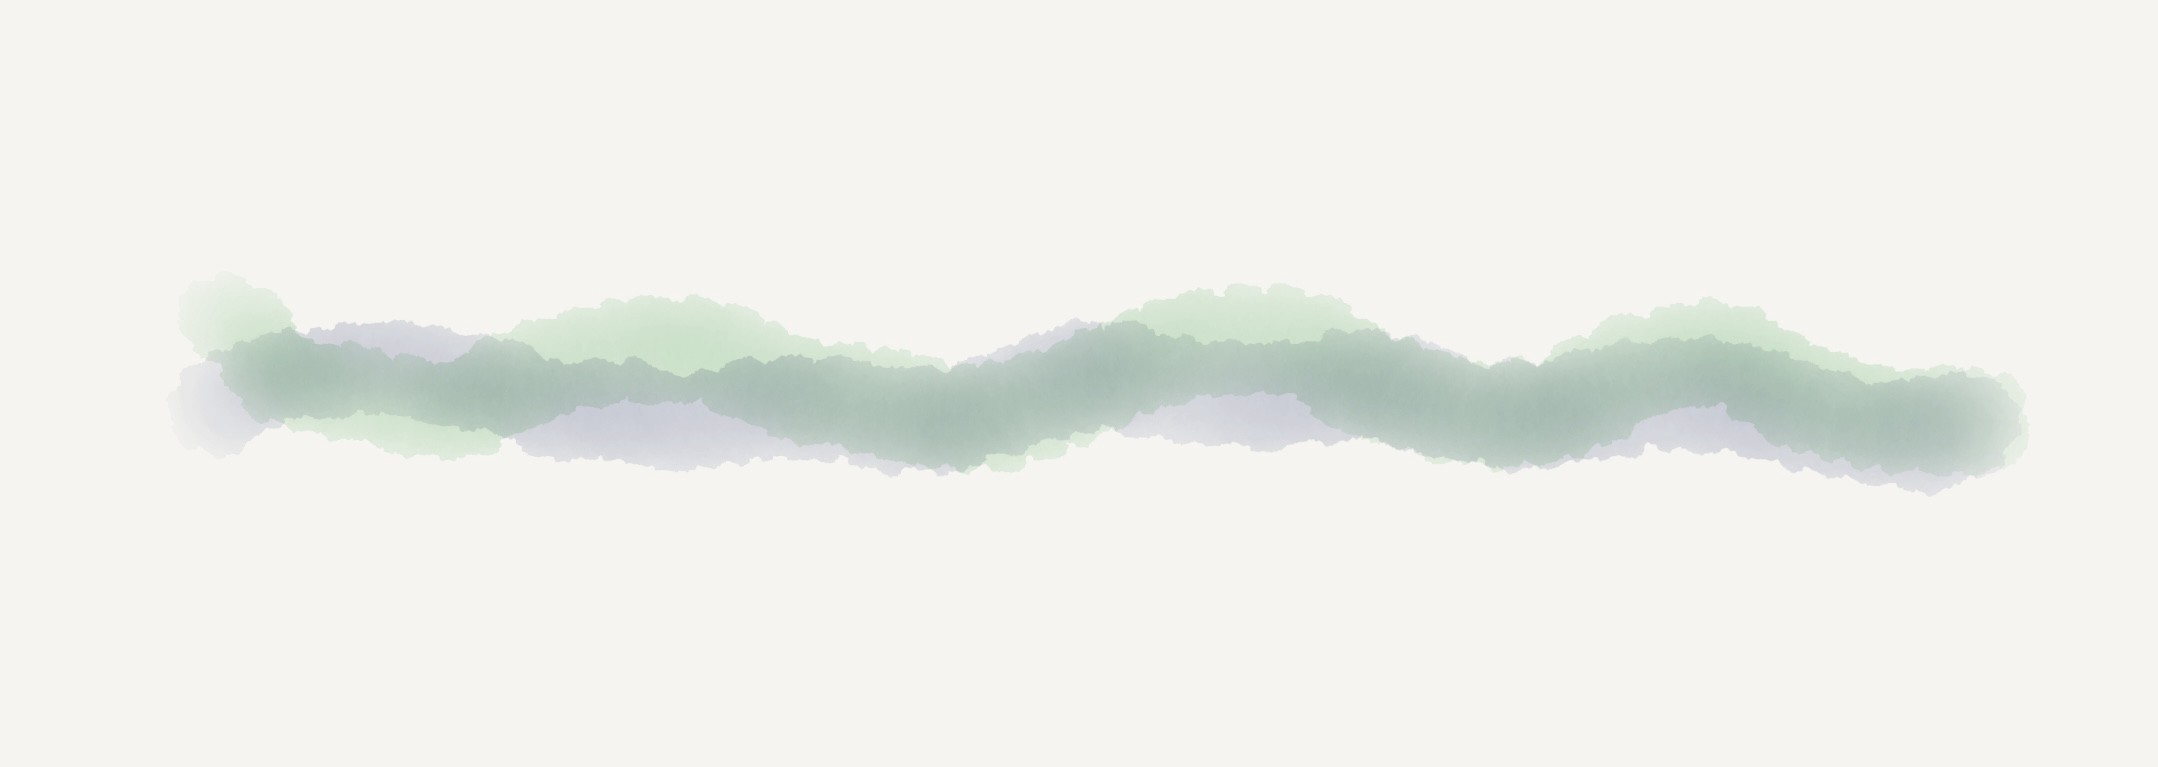 Two wavy horizontal watercolor lines, one purple, one green, woven together.